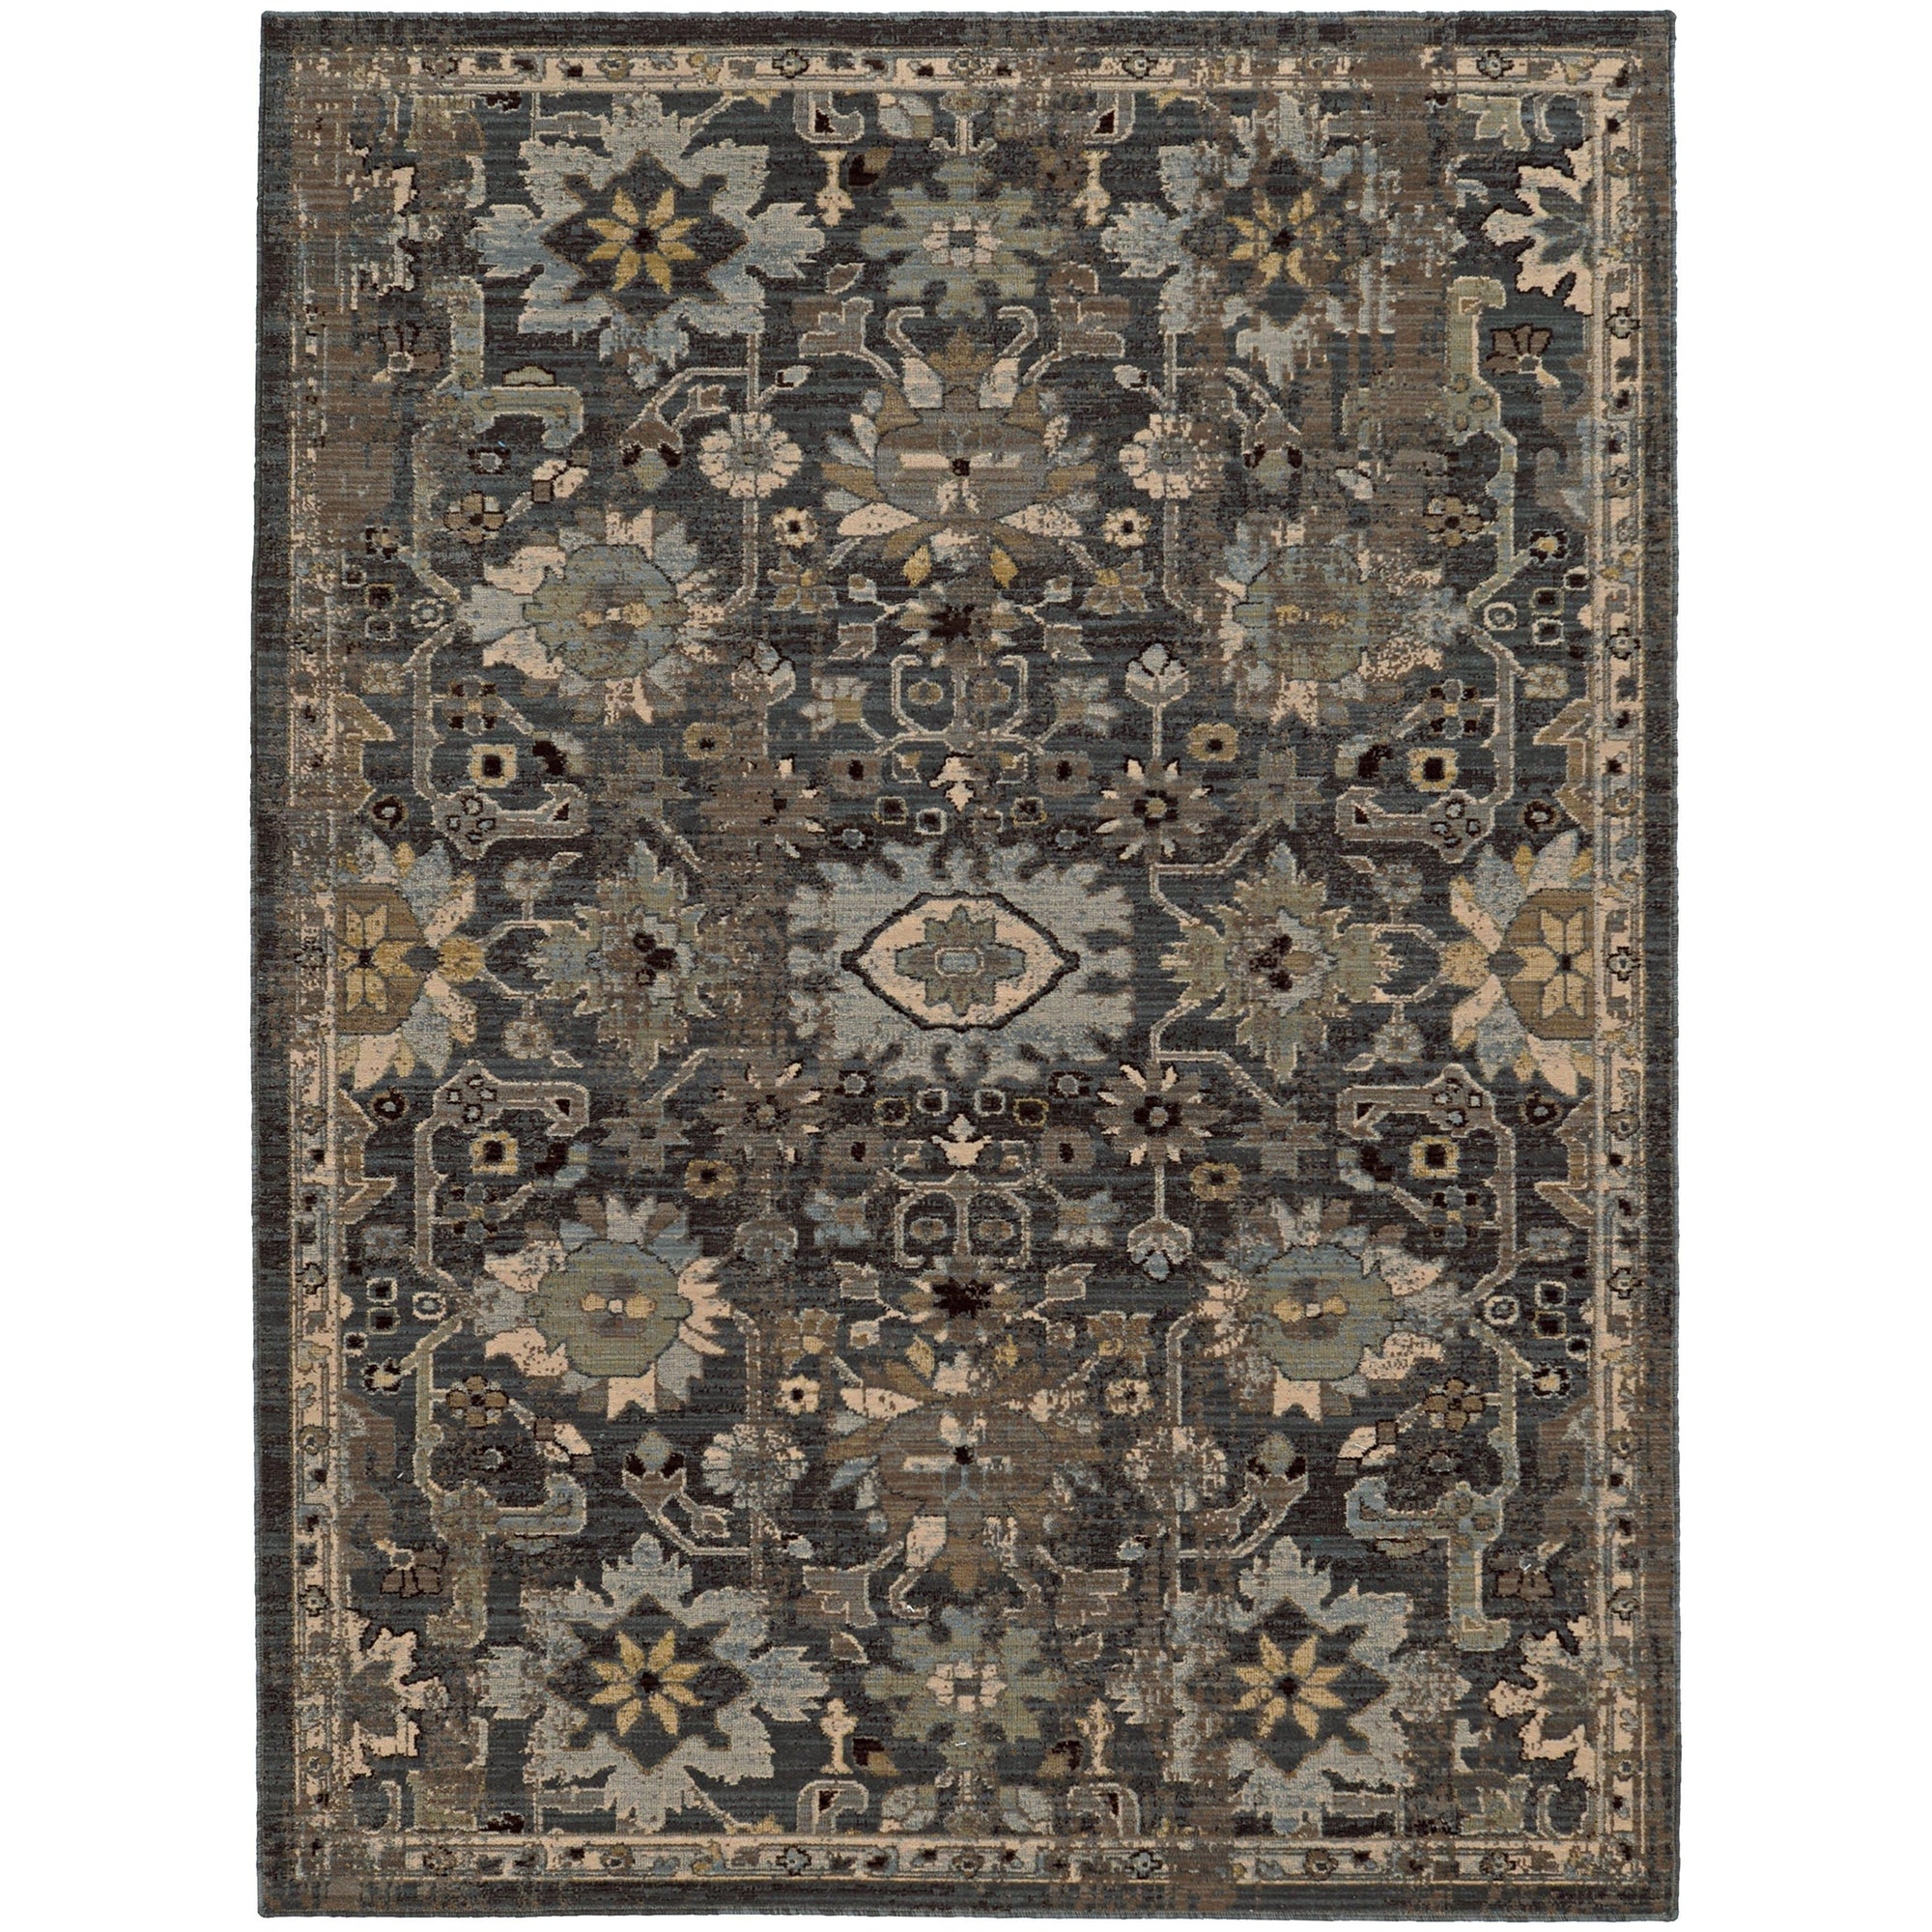 "Tommy Bahama Home Vintage 668n Blue/Grey-Area Rug-Tommy Bahama Home-1'10"" X 3' 3""-The Rug Truck"